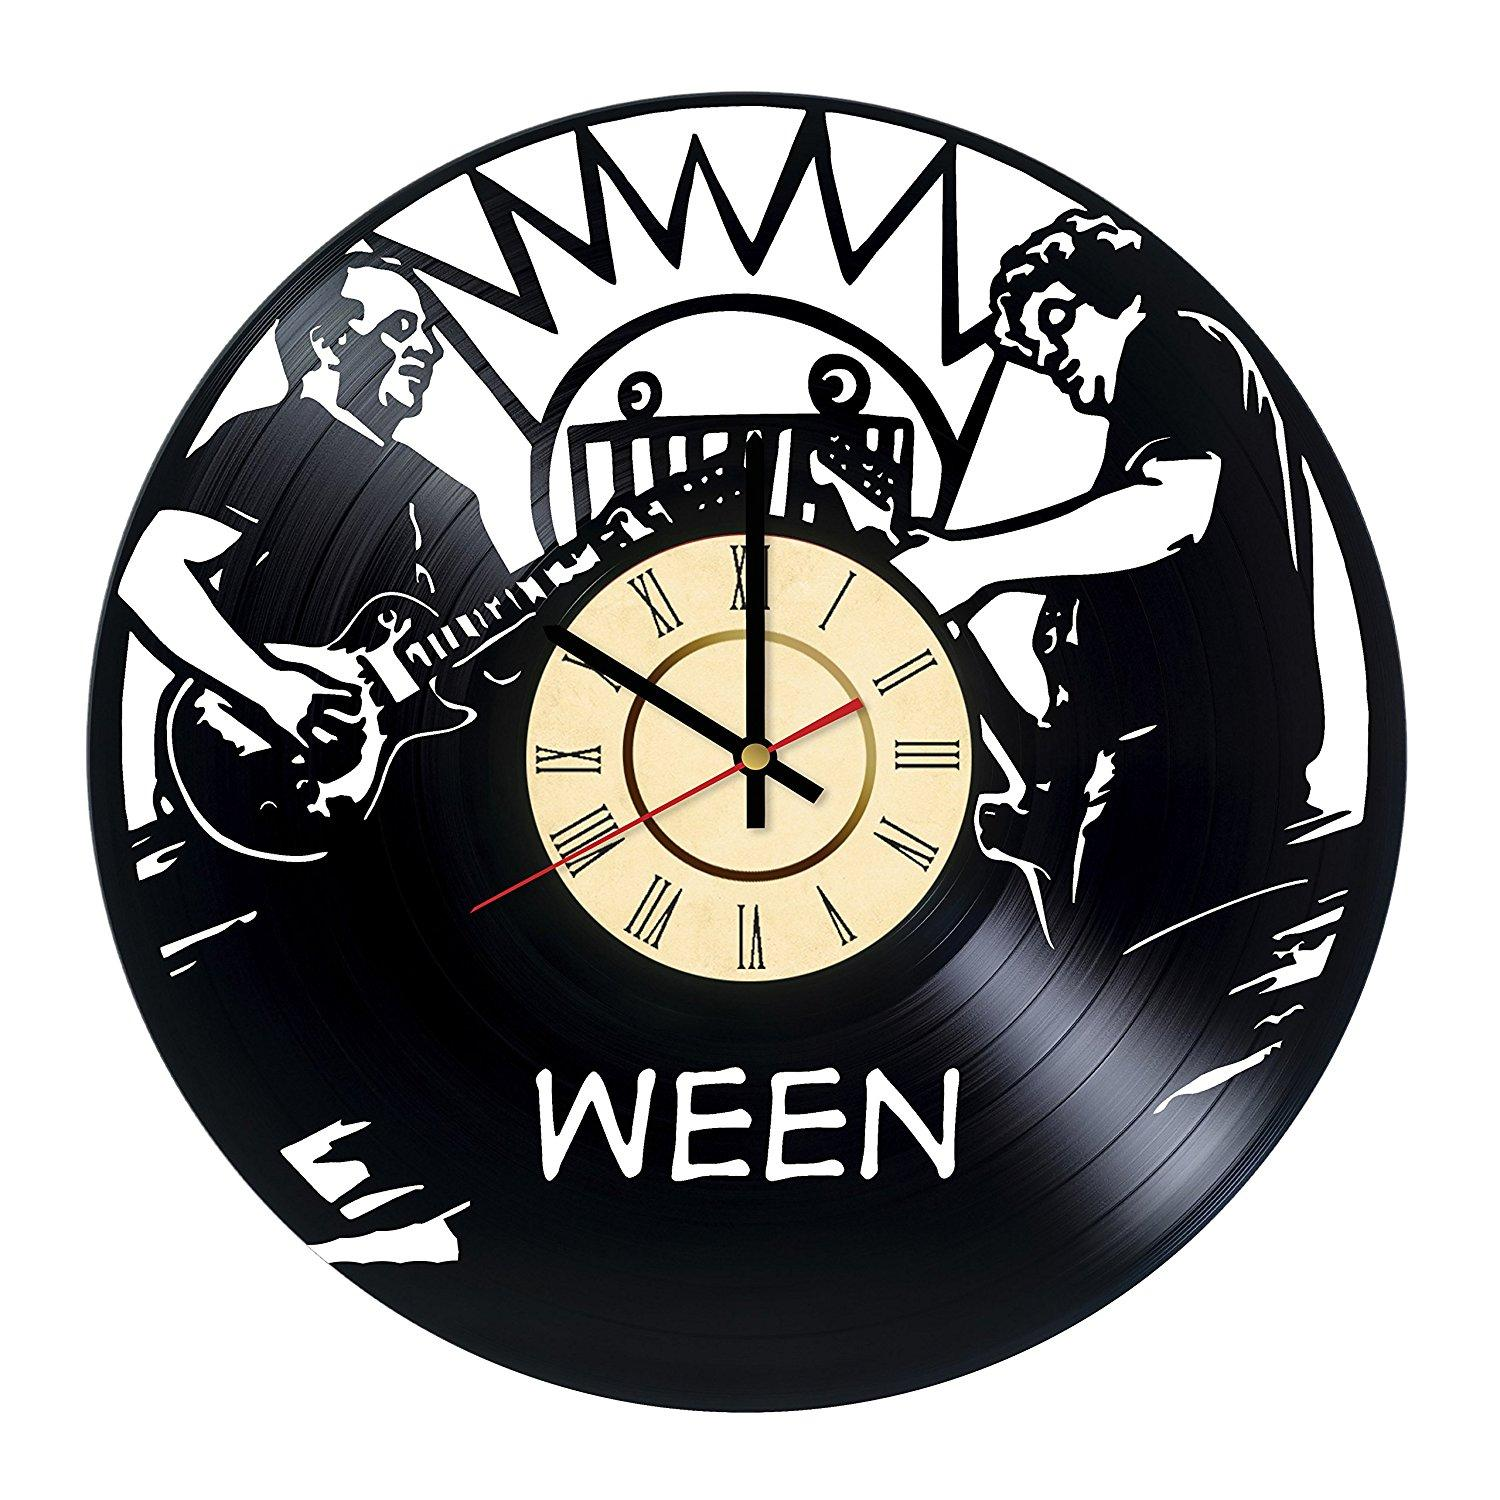 Ween rock band vinyl record wall clock get unique bedroom or home ween rock band vinyl record wall clock get unique bedroom or home room wall decor unique modern music fan art contemporary kitchen clocks contemporary amipublicfo Images